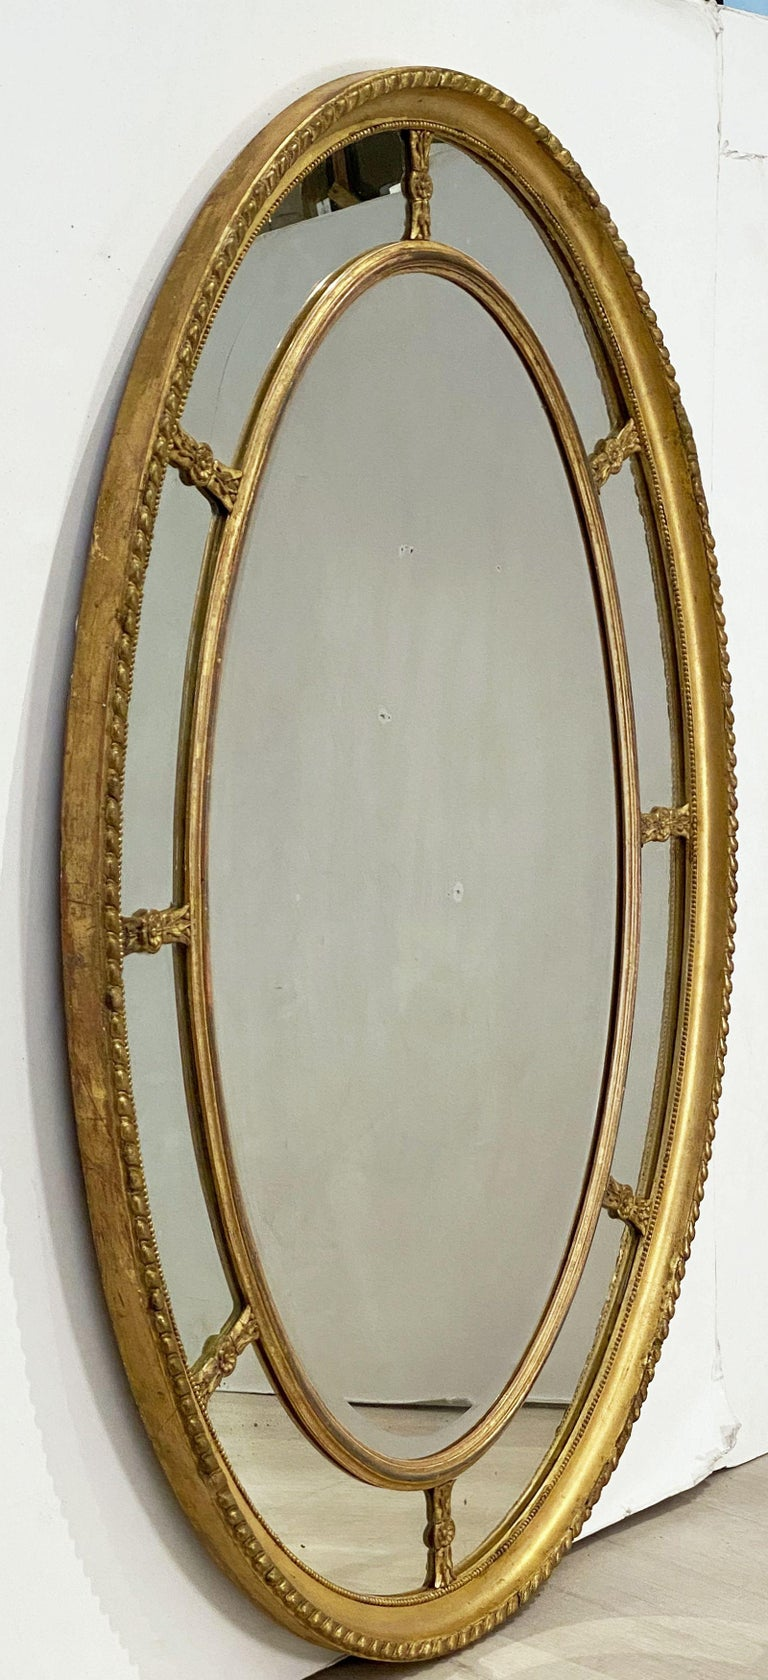 A handsome large English segmented gilt oval wall mirror in the Adam style, featuring a gilt wood oval segmented marginal border mirror.  The carved, rope-edged frame showing eight small inner mirrors with eight leaf and flower head divides,